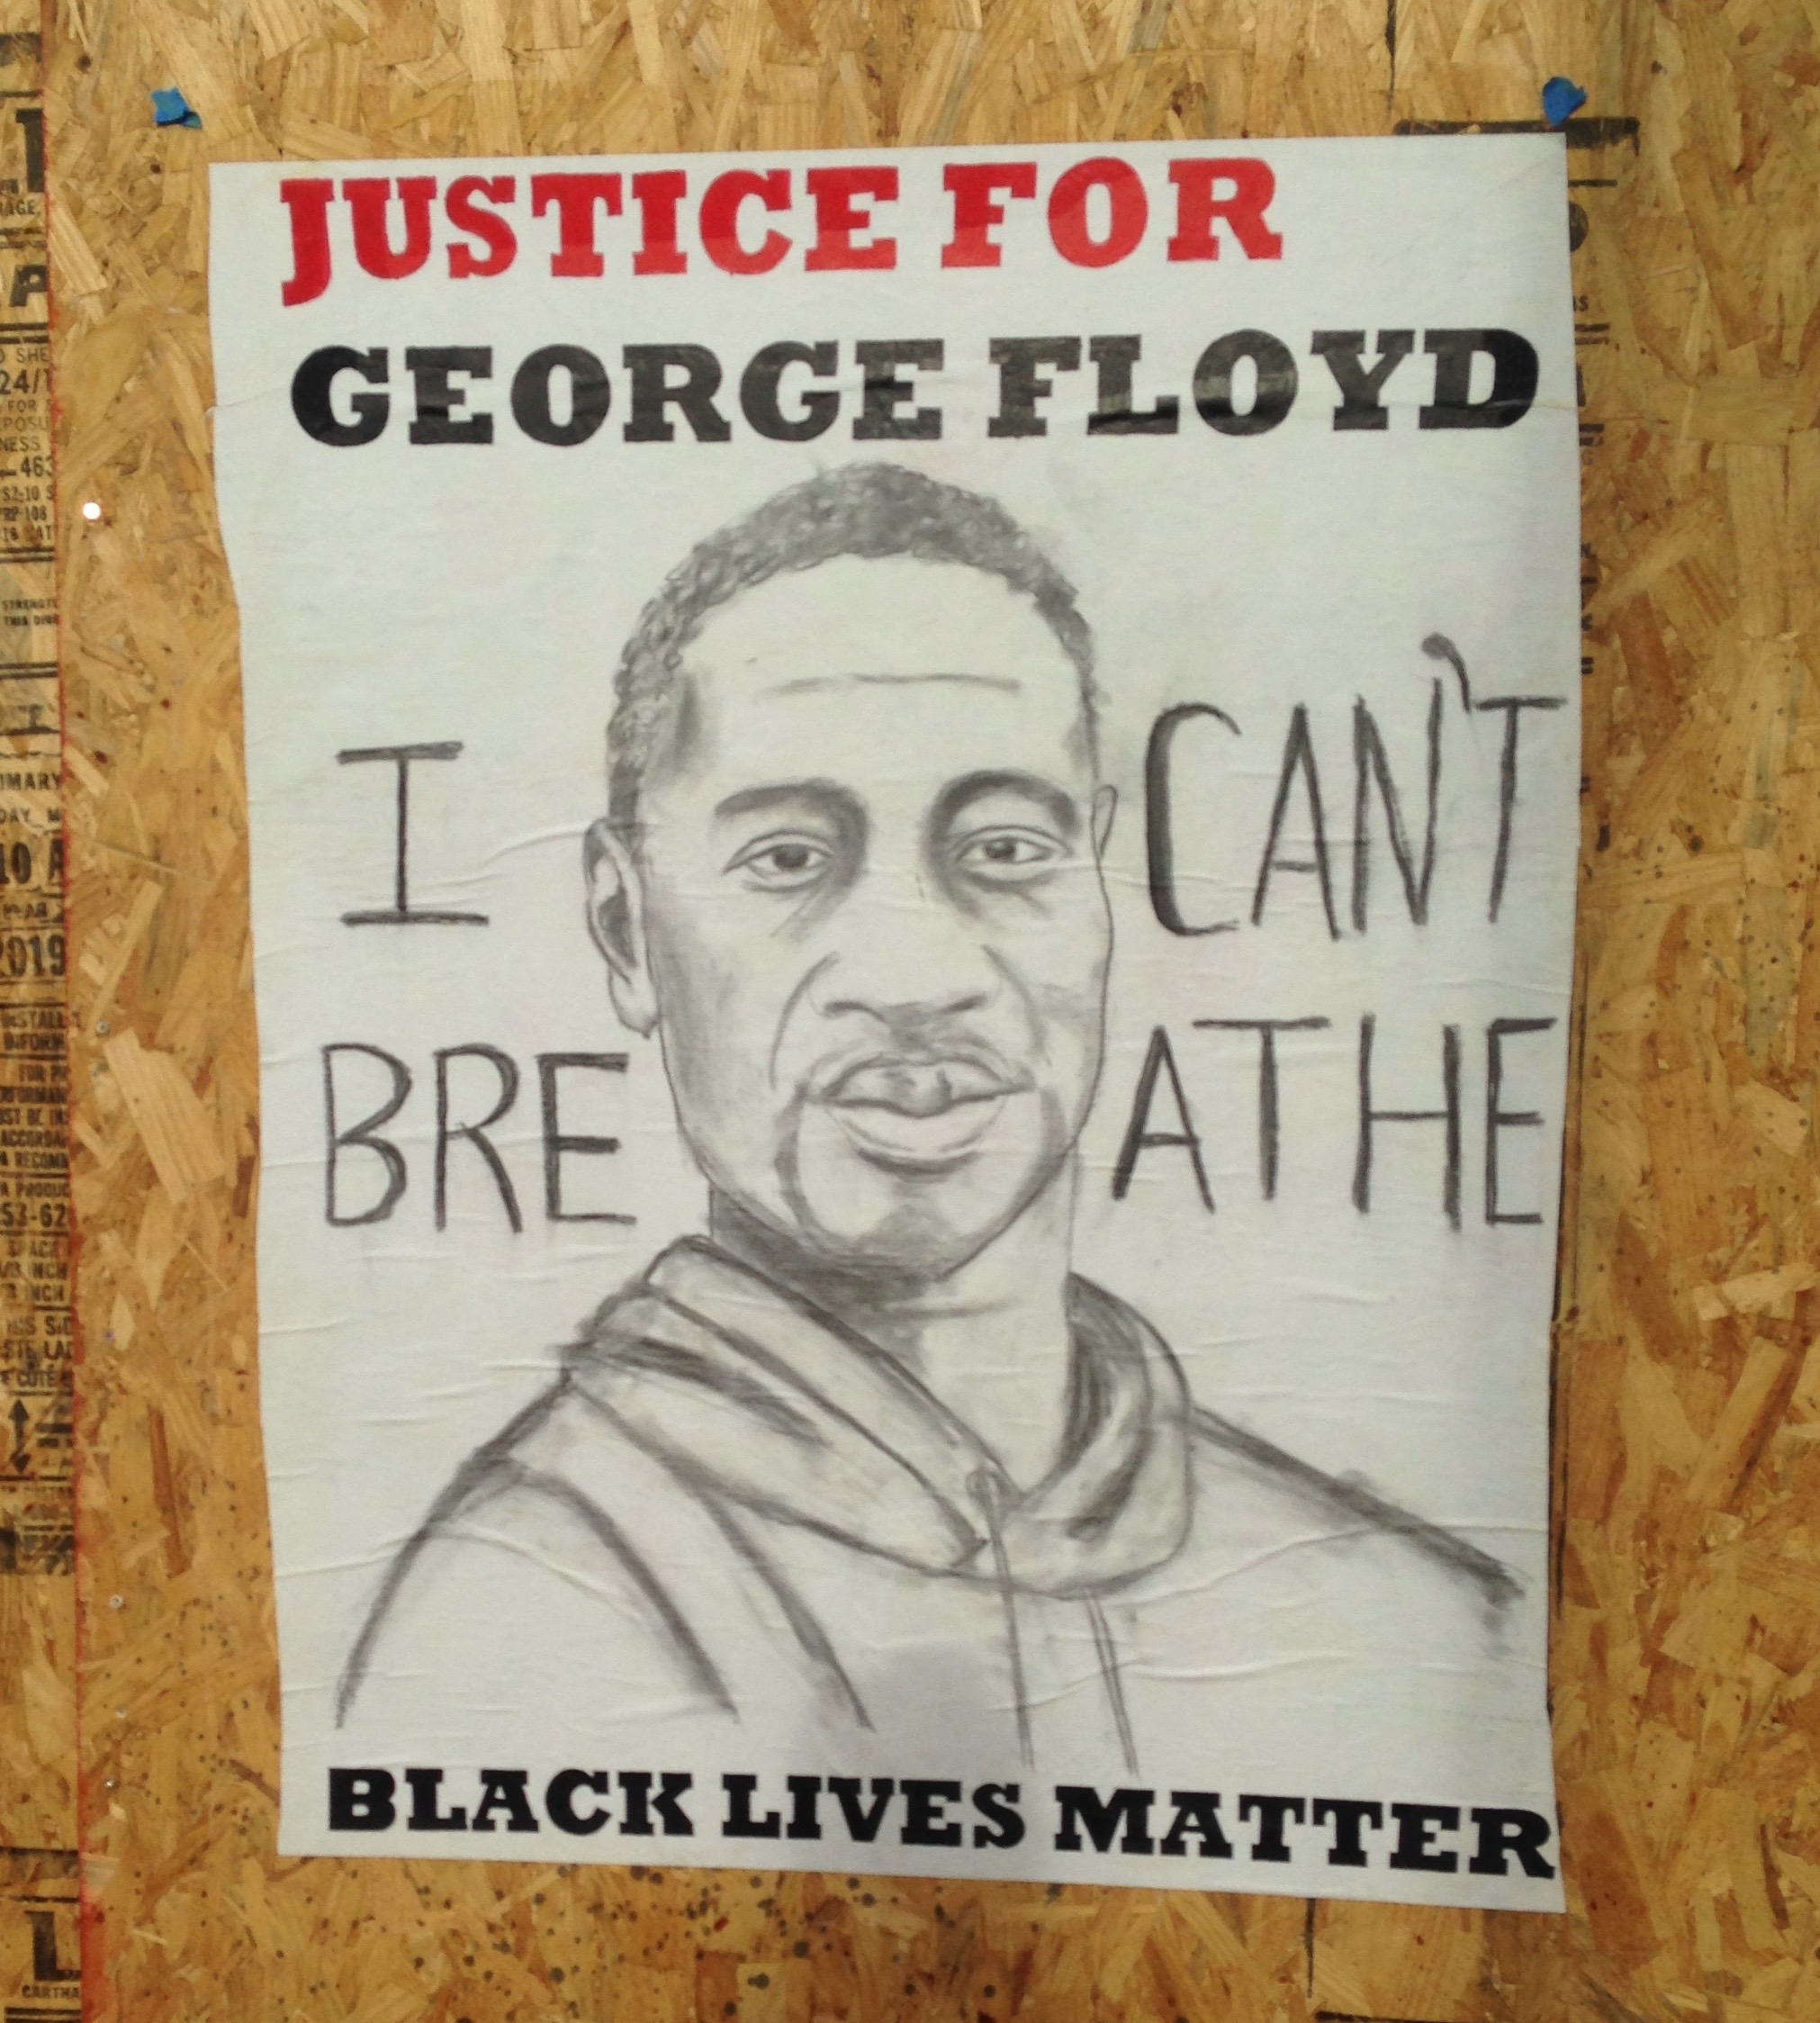 Justice_for_George_Floyd.jpg